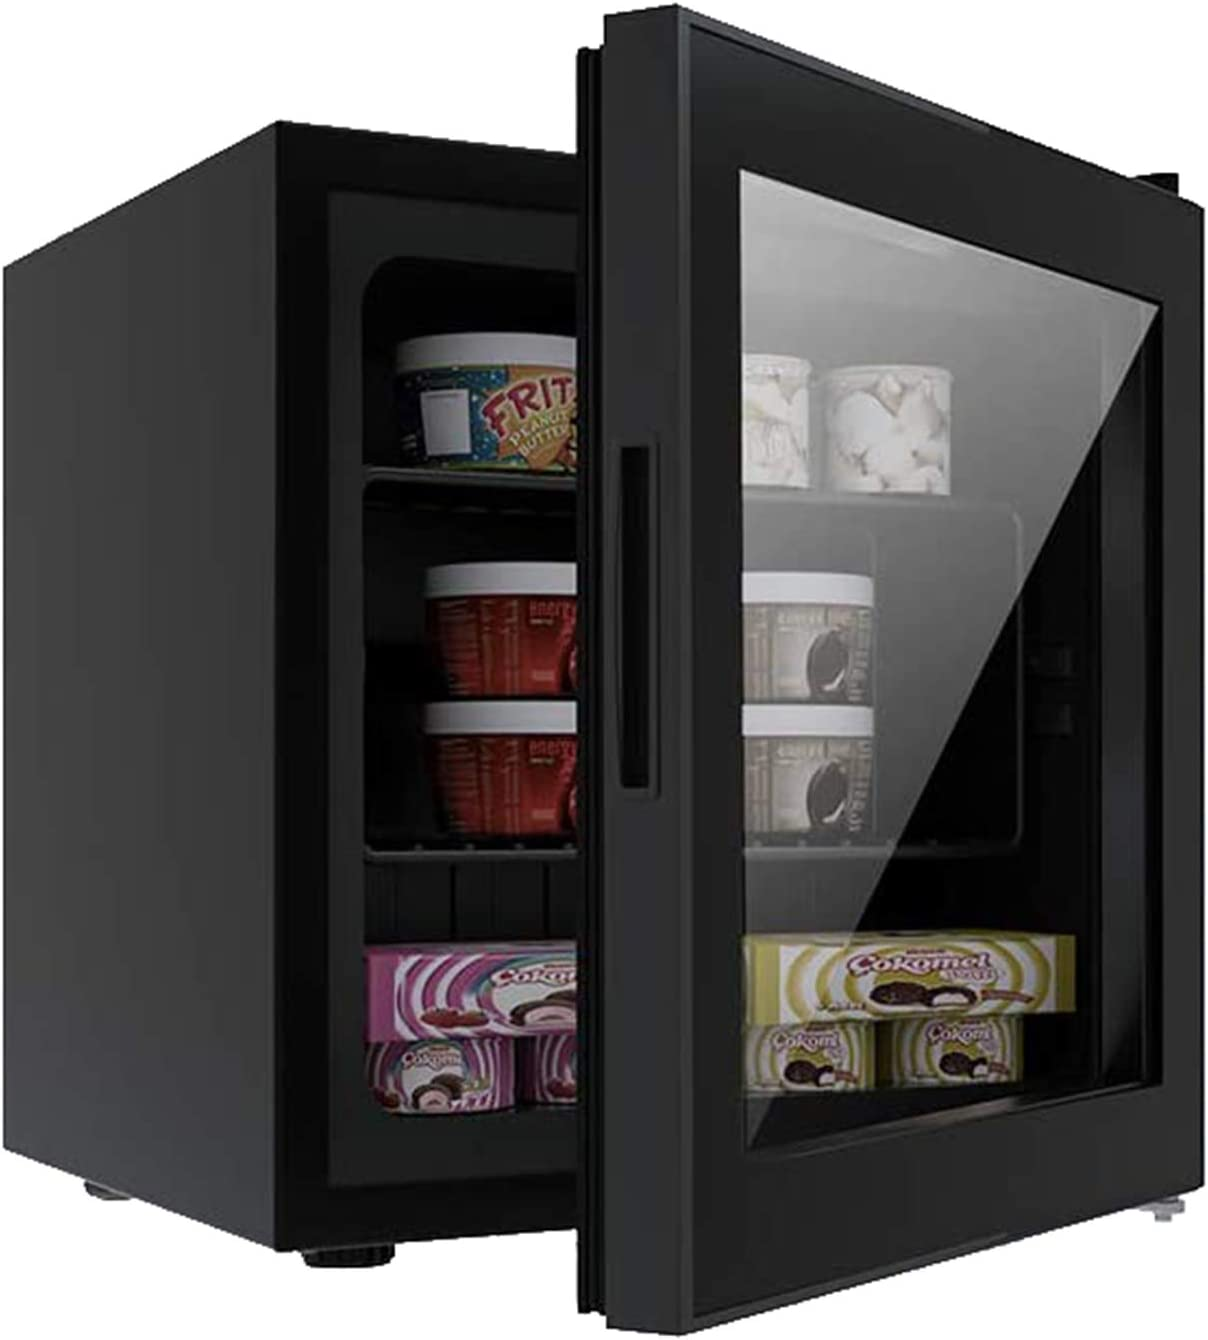 Ice Cream Breast Milk//Sea Food//High-alcohol Liquor for Home 1.1 cu.ft Black Office Bar Antarctic Star Upright Freezer Mini Fridge Compact Small Chest Reversible Three-layers Clear Front Glass Door